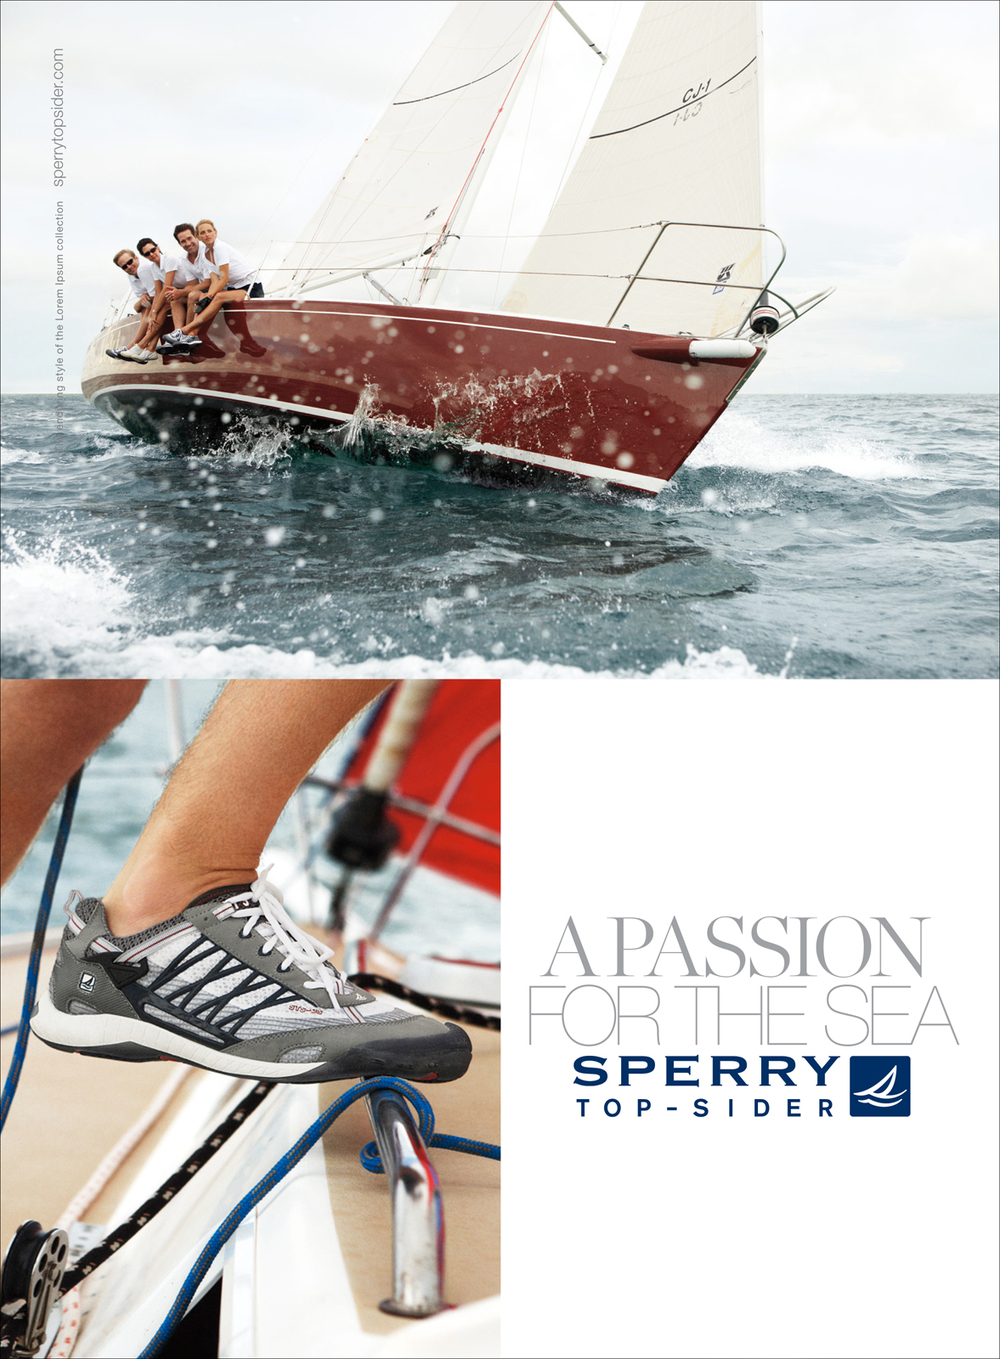 SC_ADVERTISING_SPERRY_KEYS_SS_2010_08.jpg